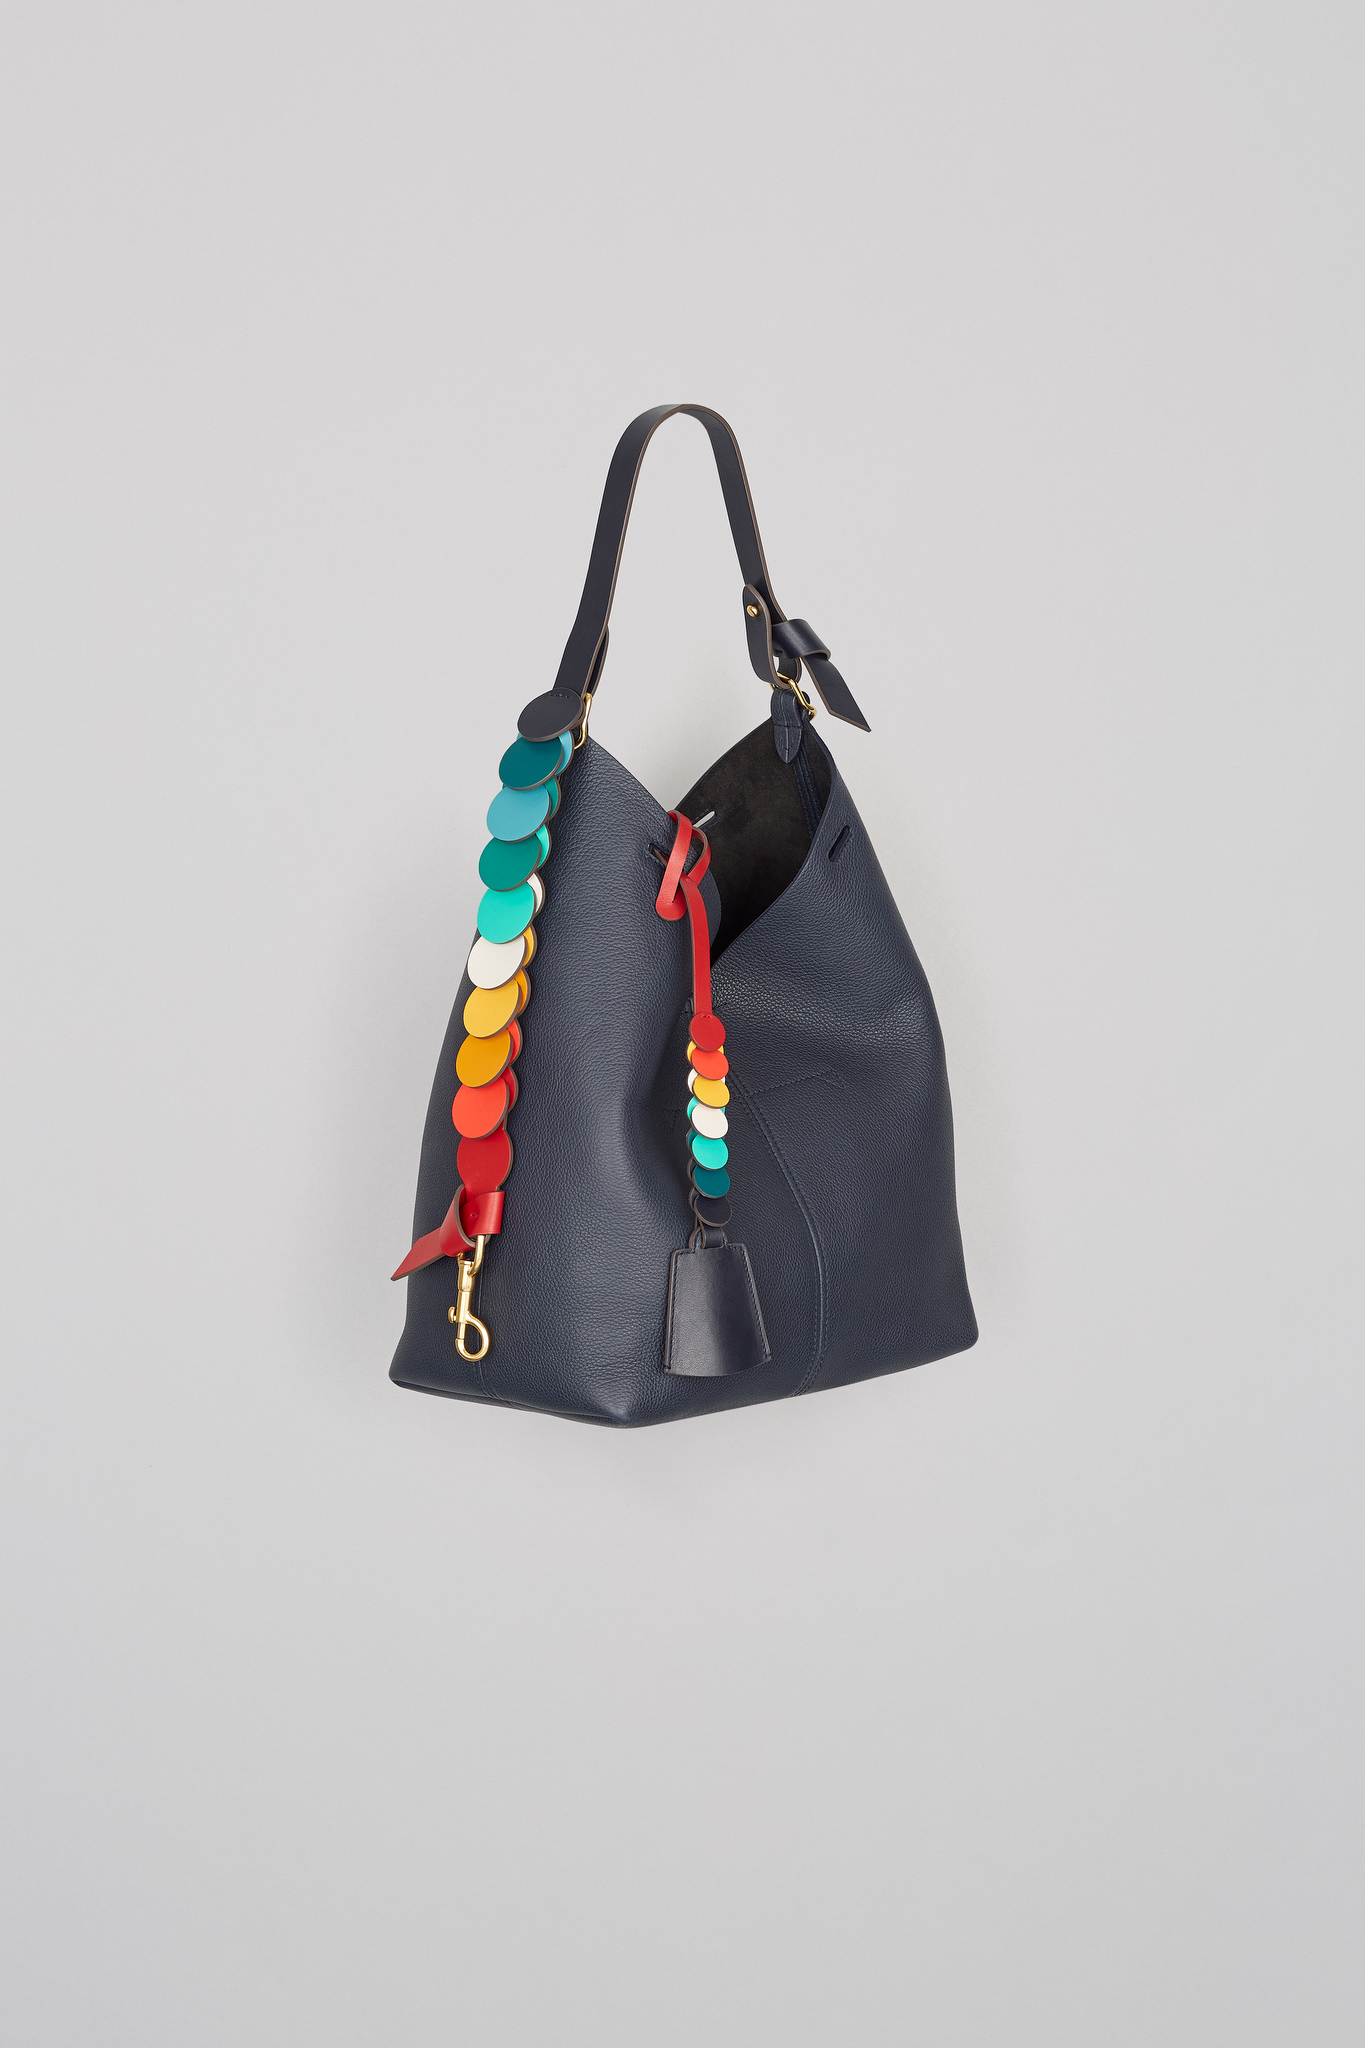 Build A Bag by Anya Hindmarch